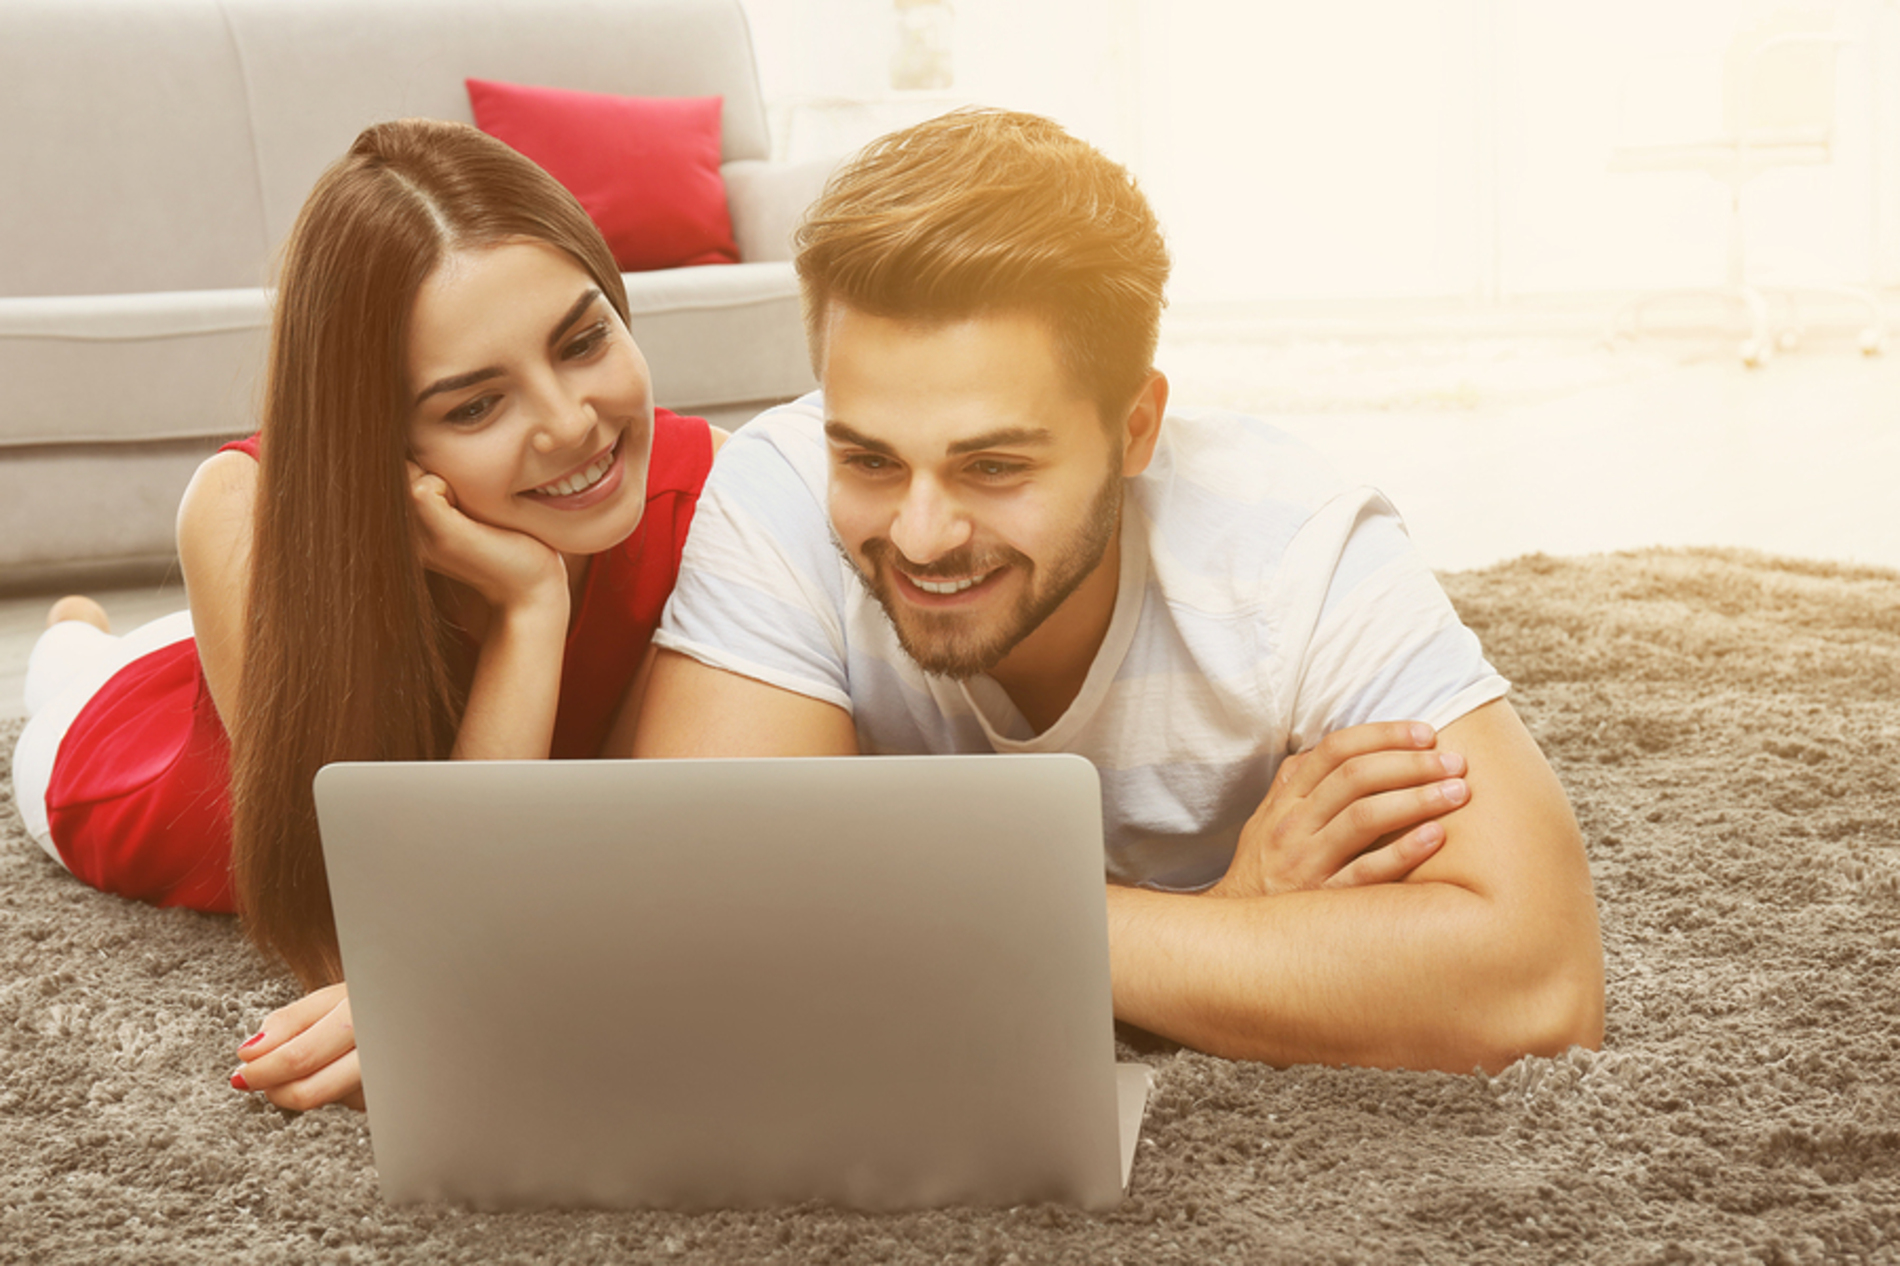 Couple lying on the floor looking at a laptop together.